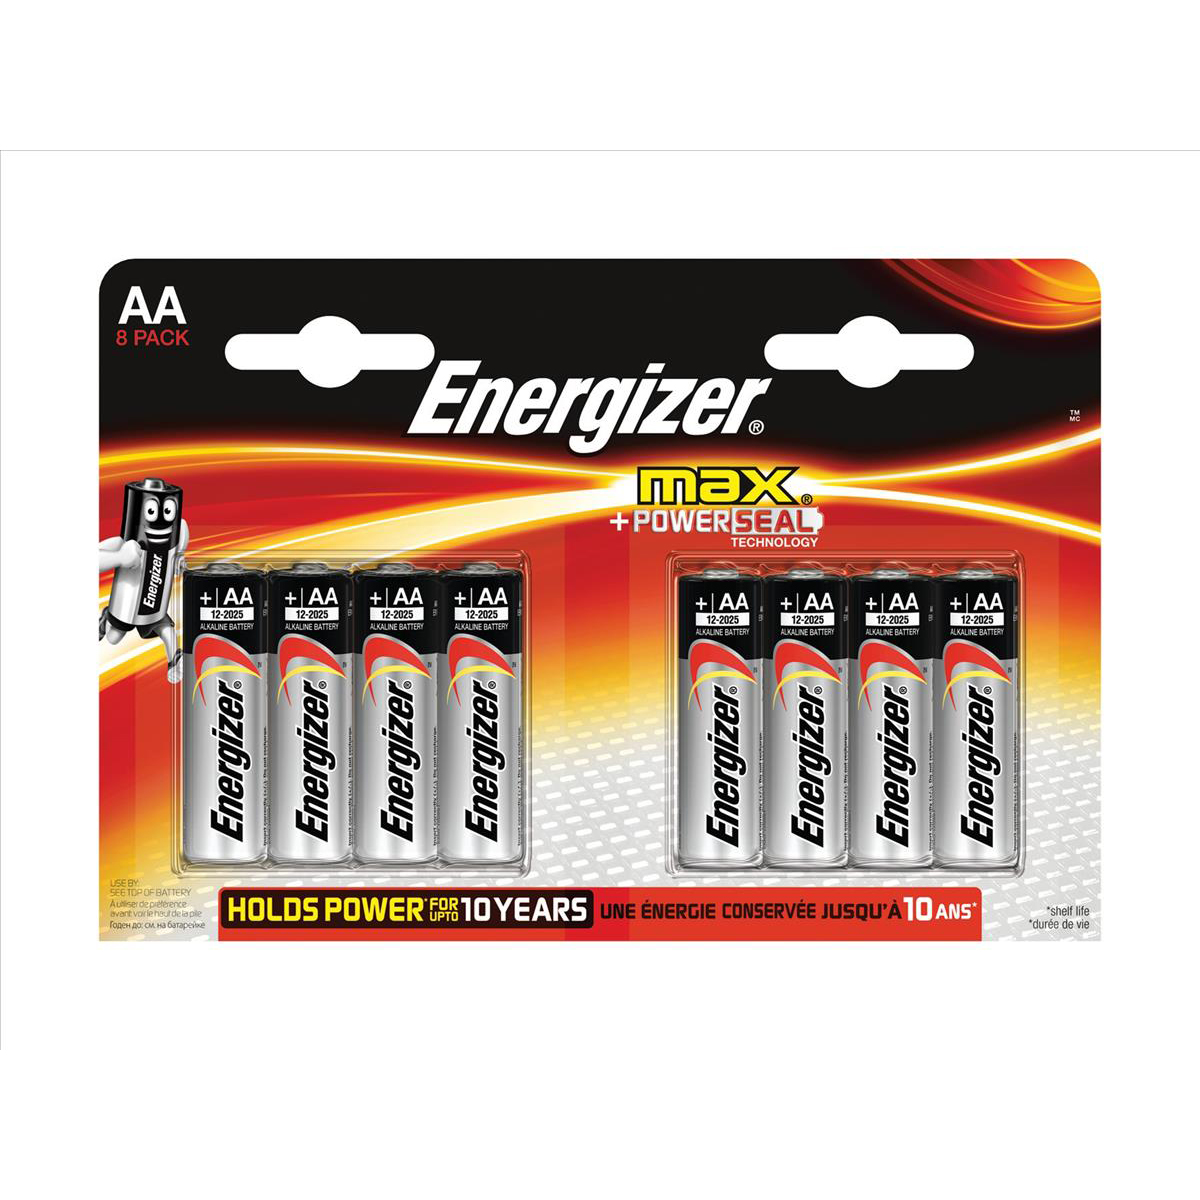 Energizer Max AA/E91 Batteries Ref E300112400 Pack 8